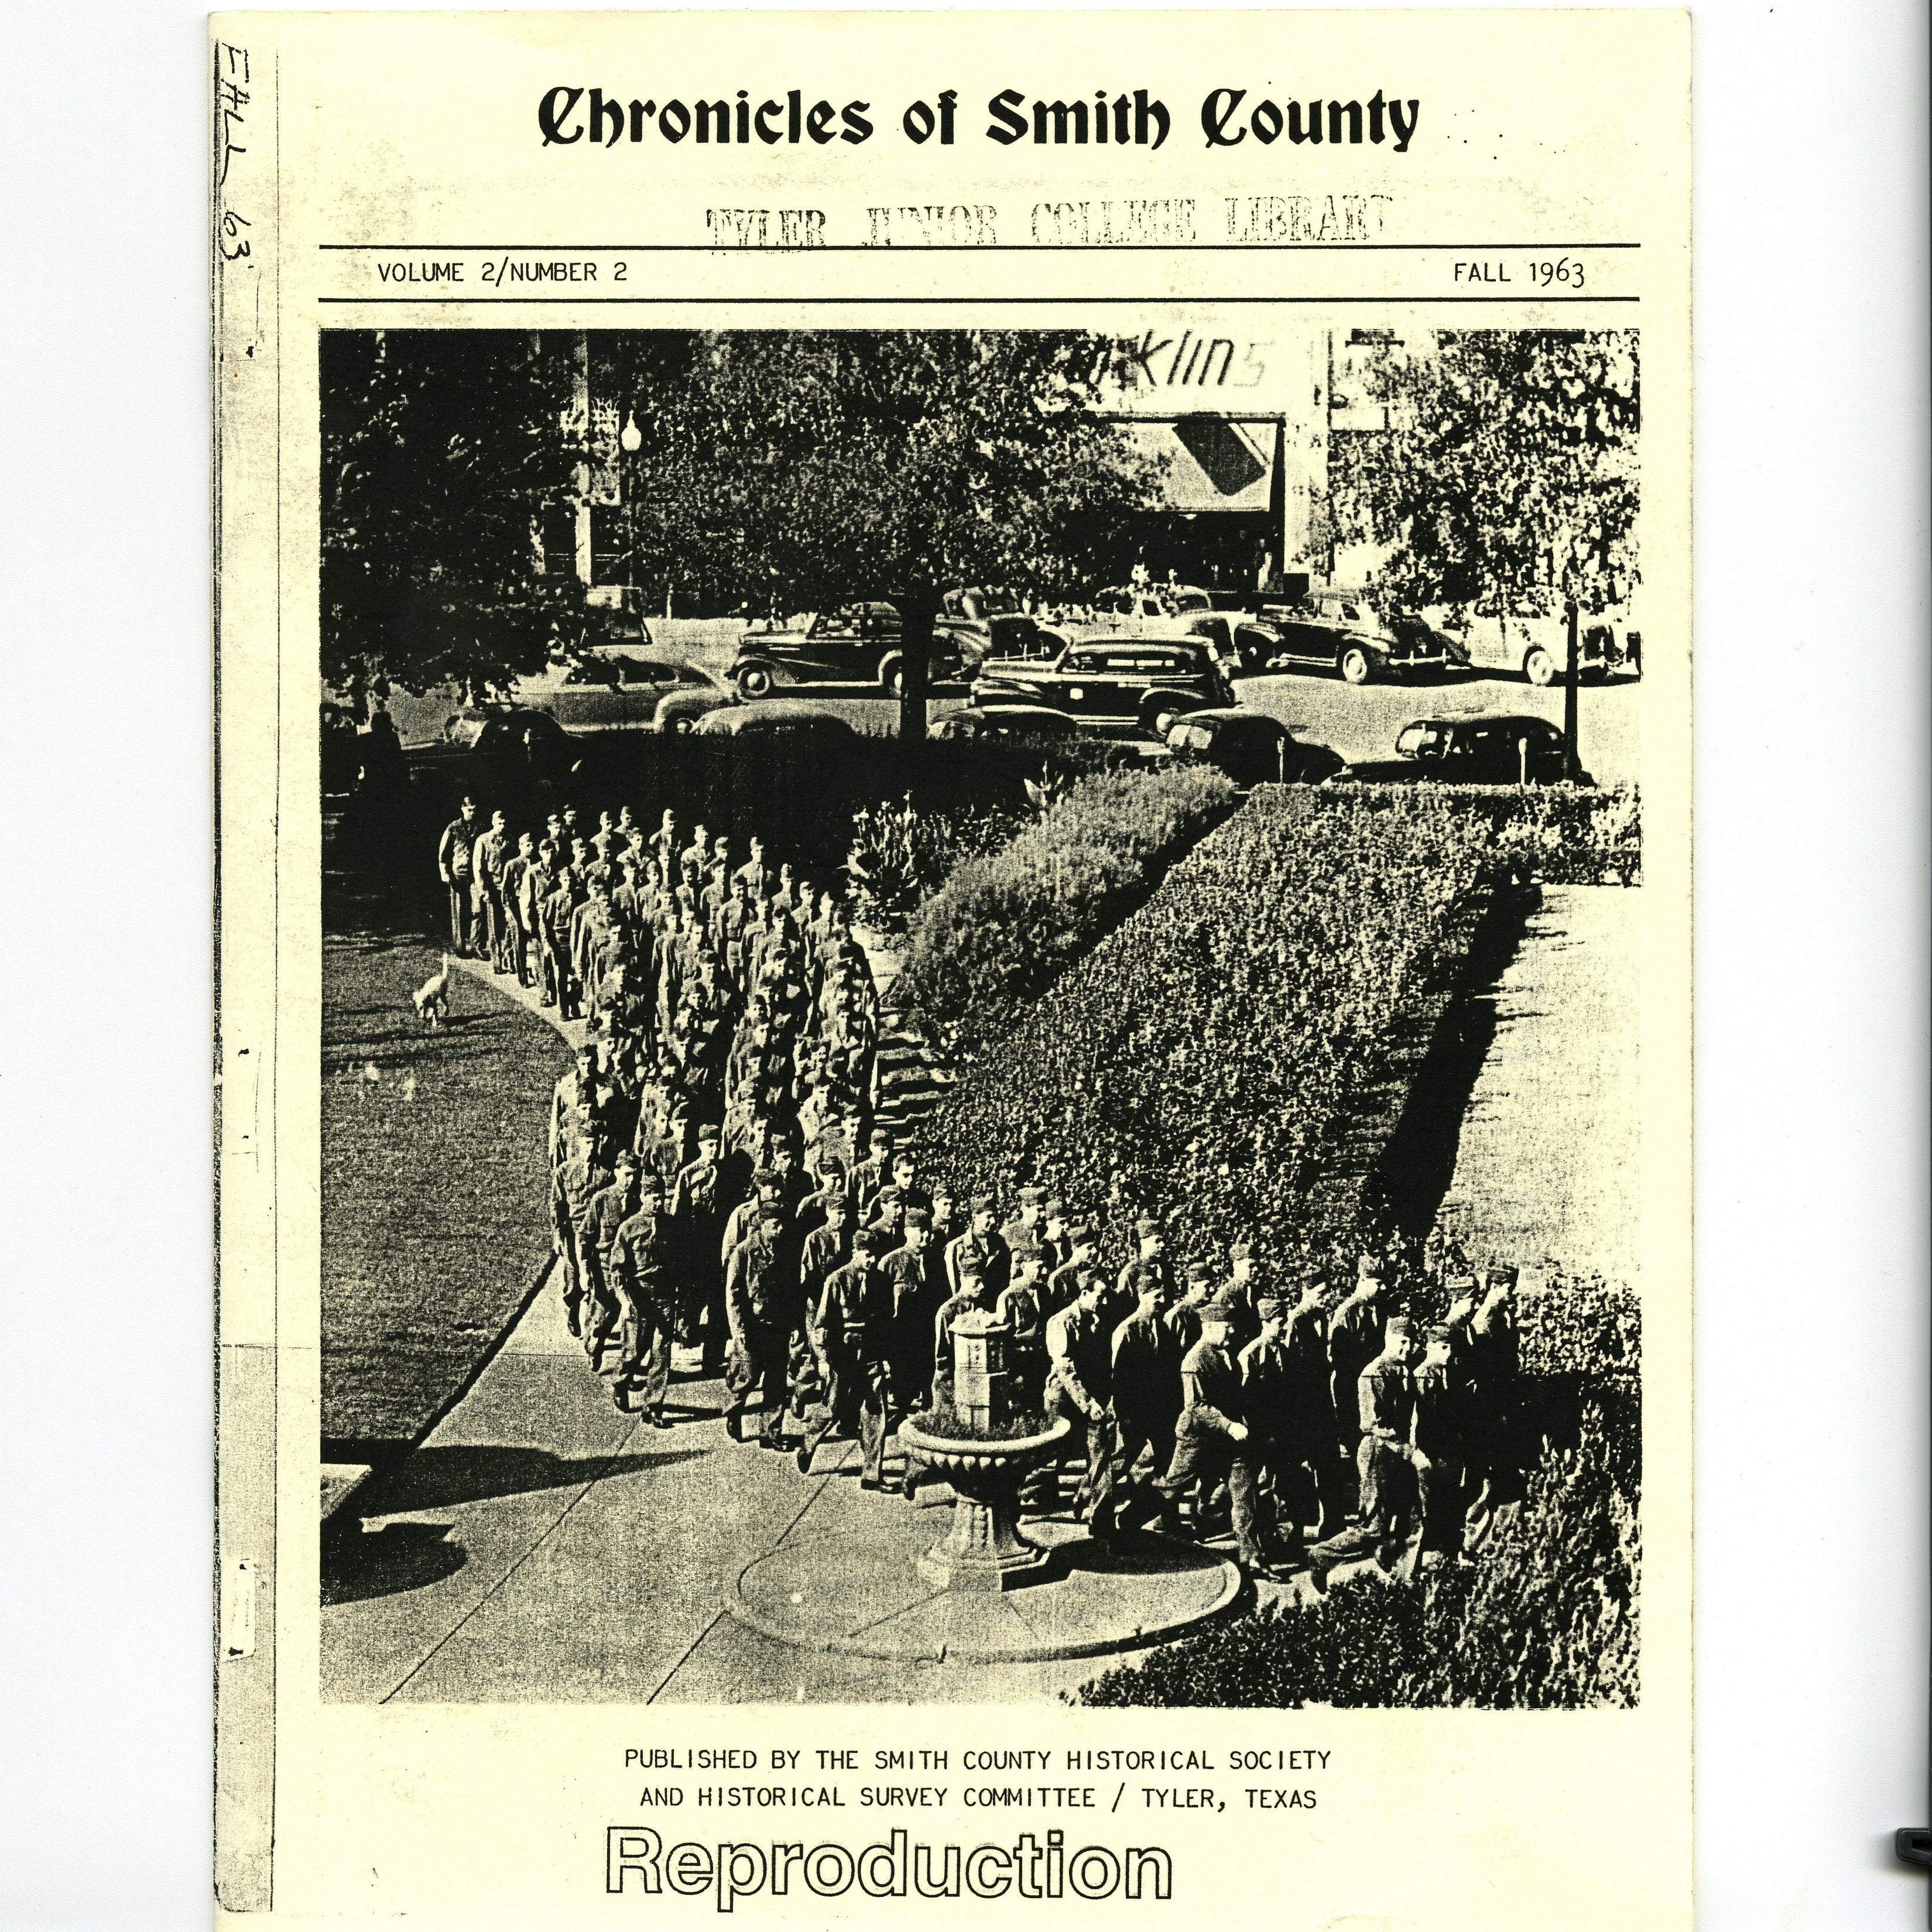 Chronicles of Smith County, Texas, Volume 2 Issue 2, Fall 1963.